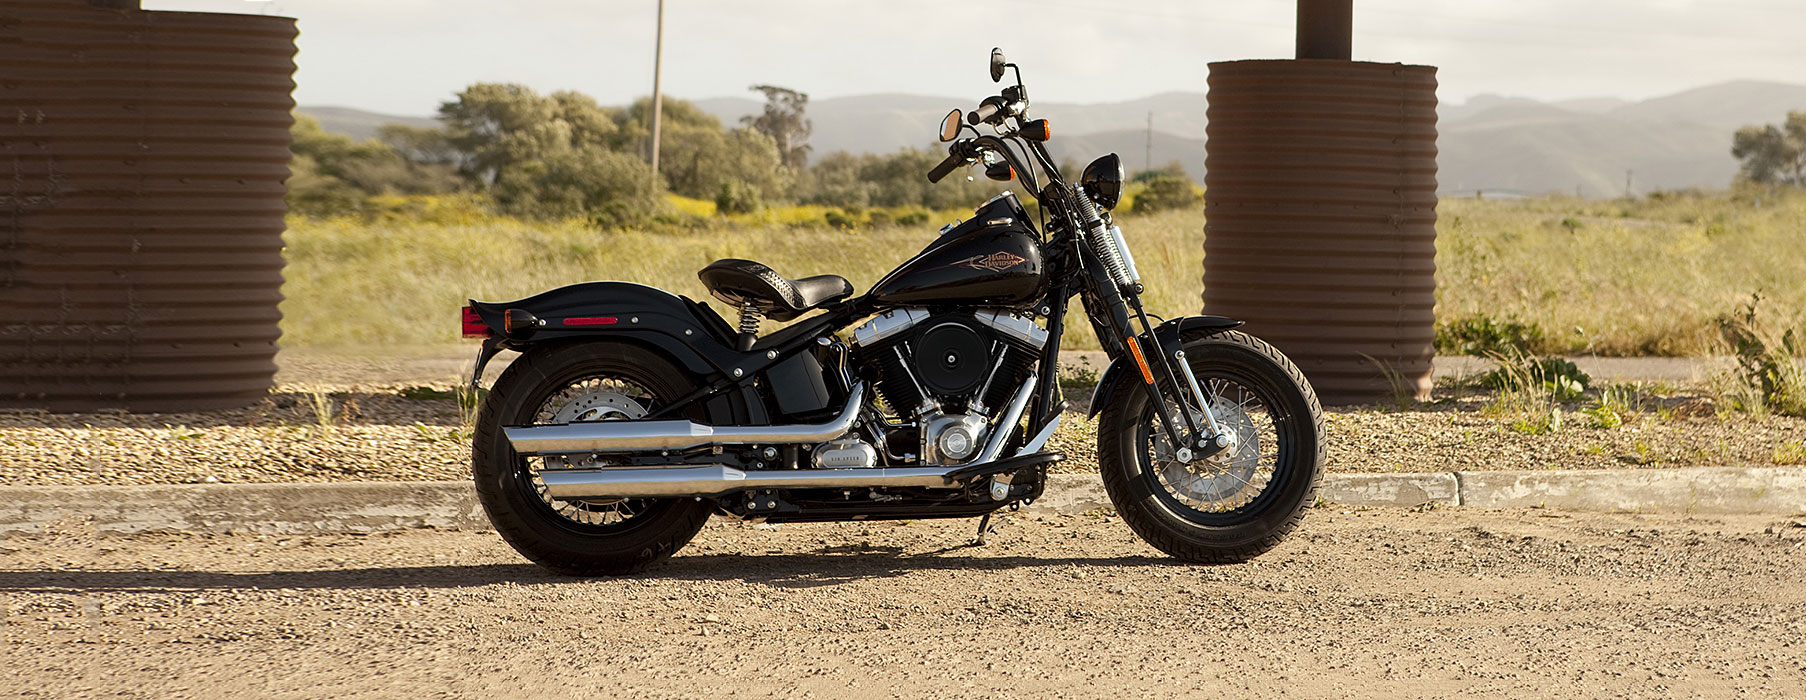 Softail<sup>®</sup> Cross Bones<sup>™</sup>